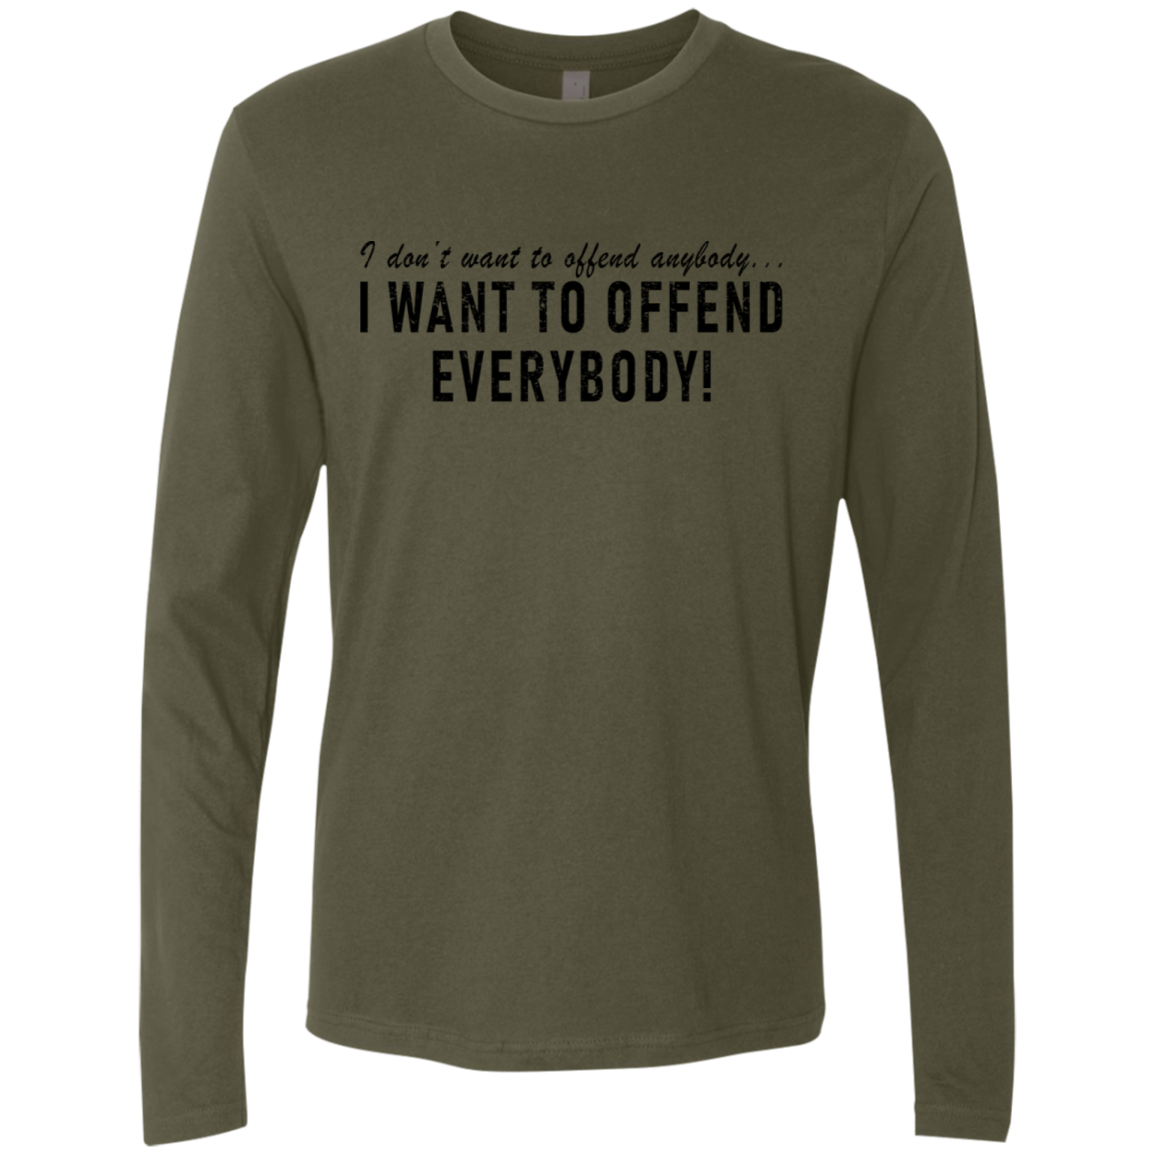 I Don't Want To Offend Anybody I Want To Offend Everybody Men's Long Sleeve Tee